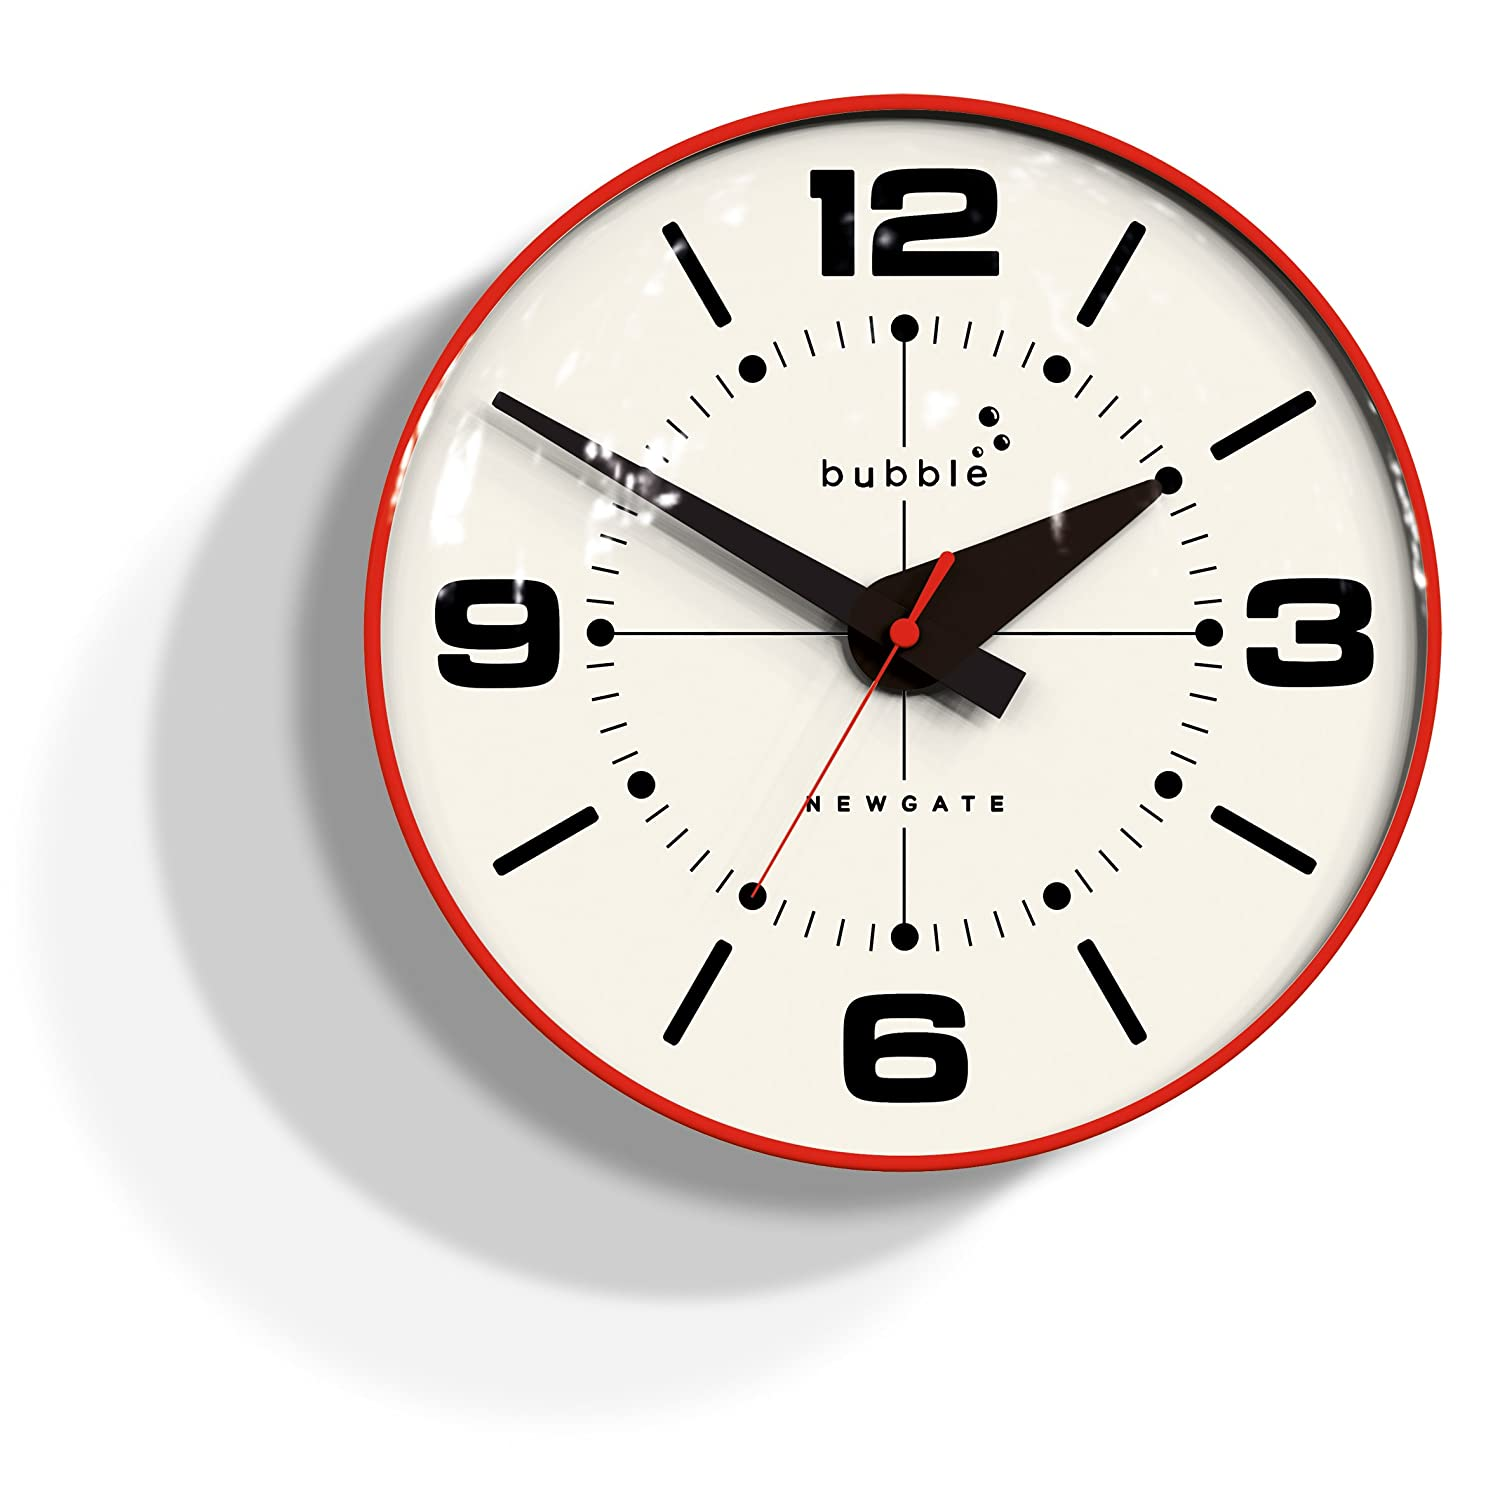 Newgate Bubble Wall Clock - Red Body